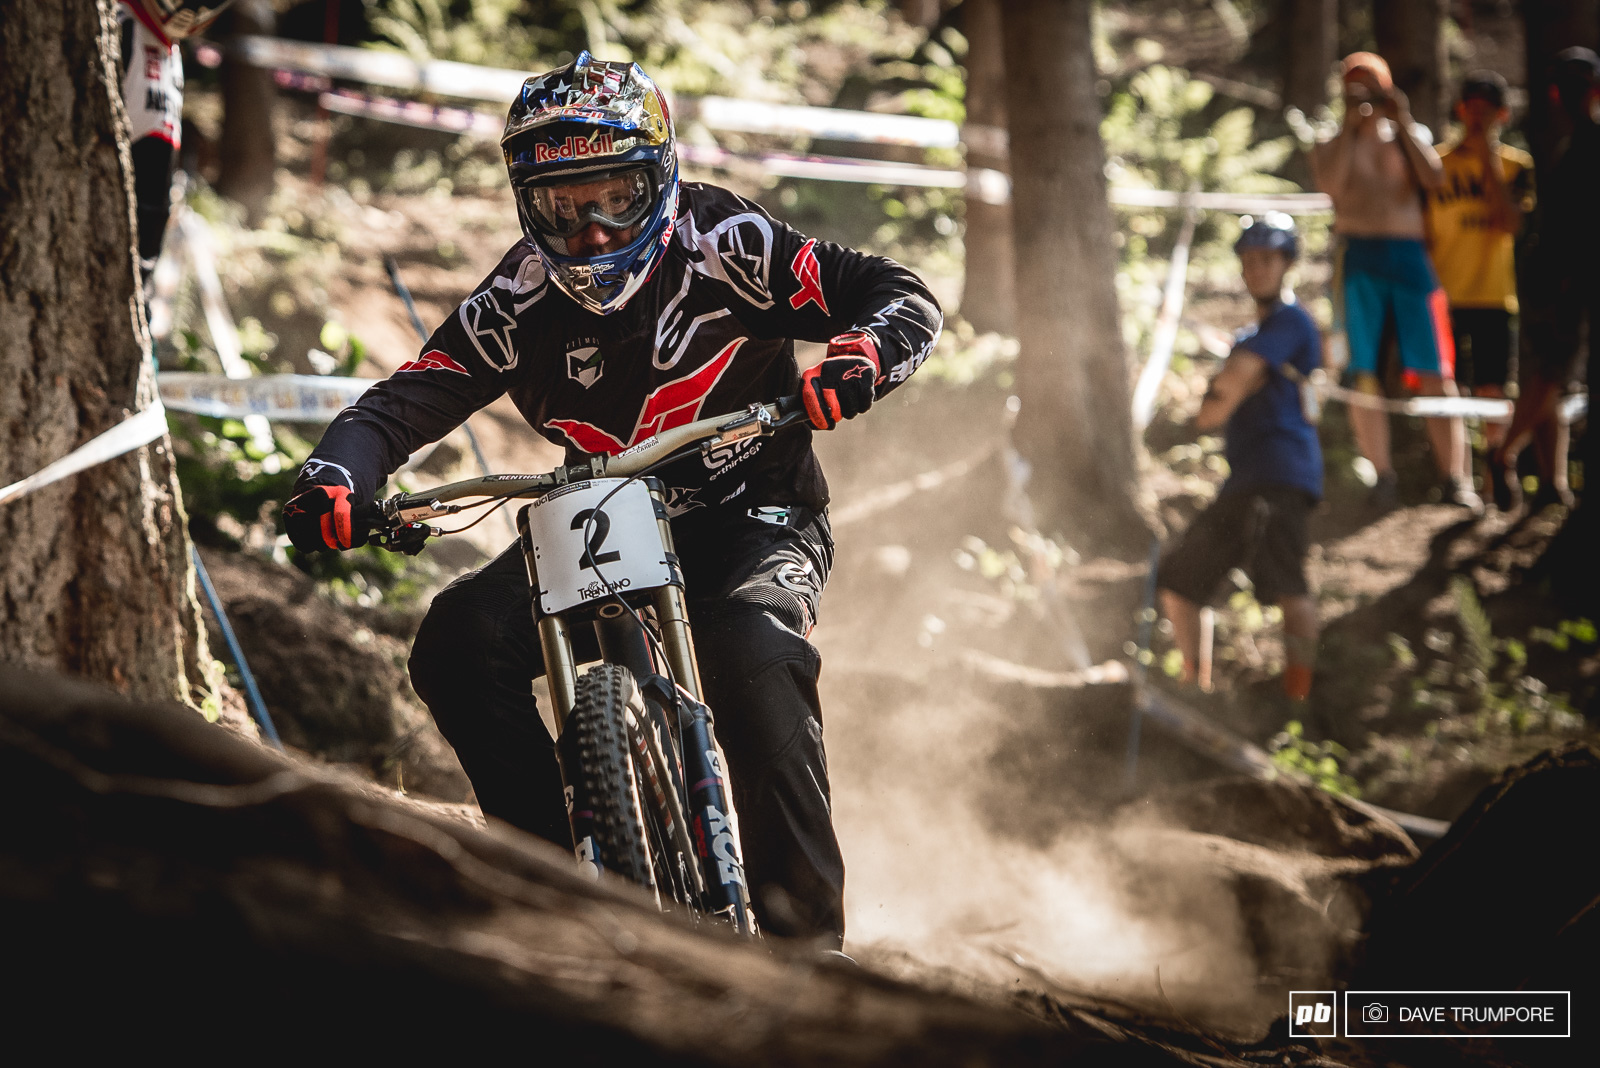 Aaron was cruising today and mostly checking out lines but given his track record in Val di Sole we imagine he is going to turn in up a notch over the next few days.